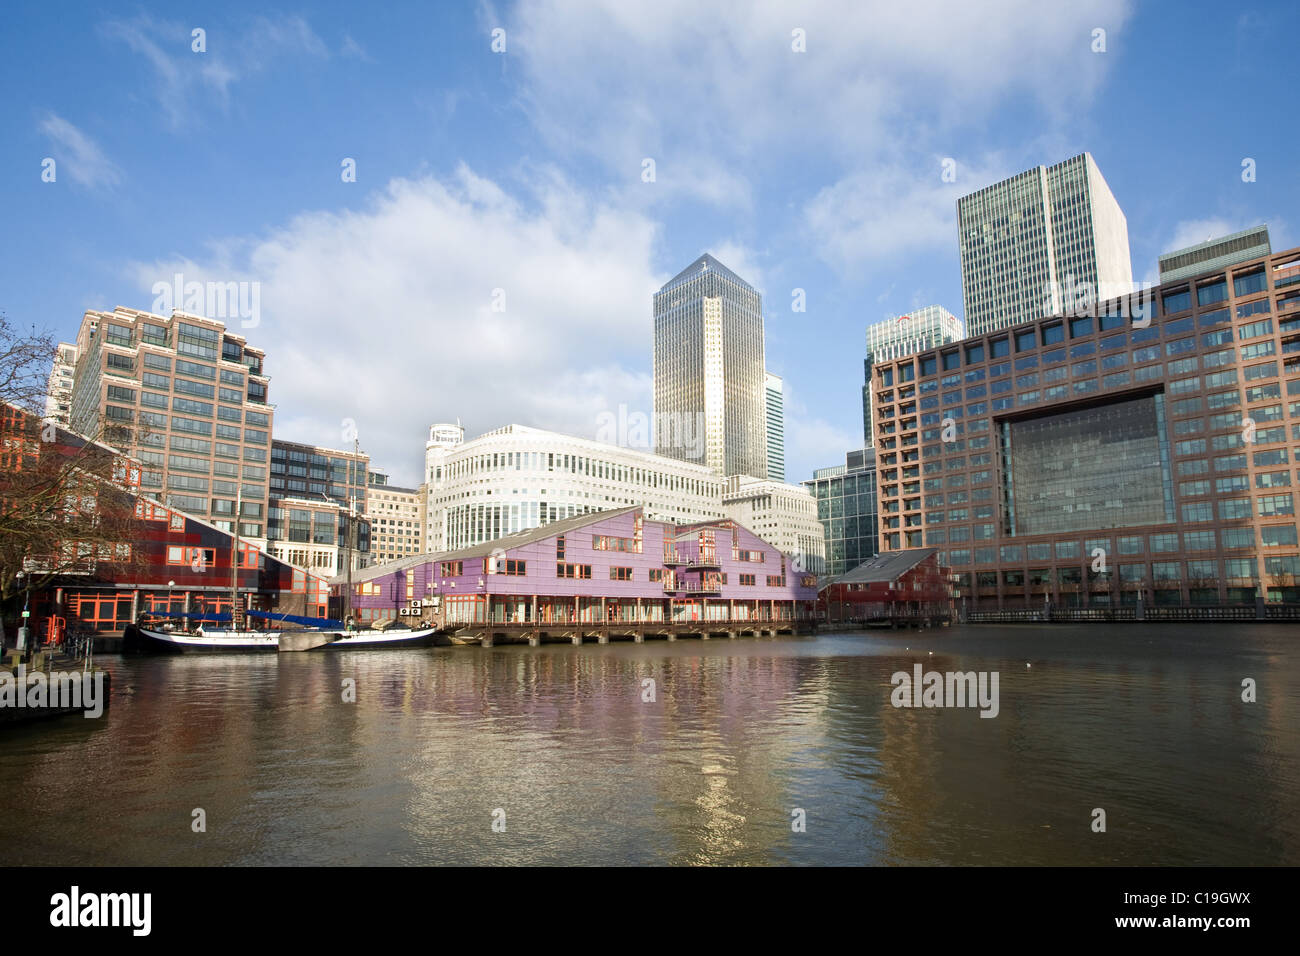 West India Millwall Docks and One Canada Square, Docklands, London, England, UK - Stock Image